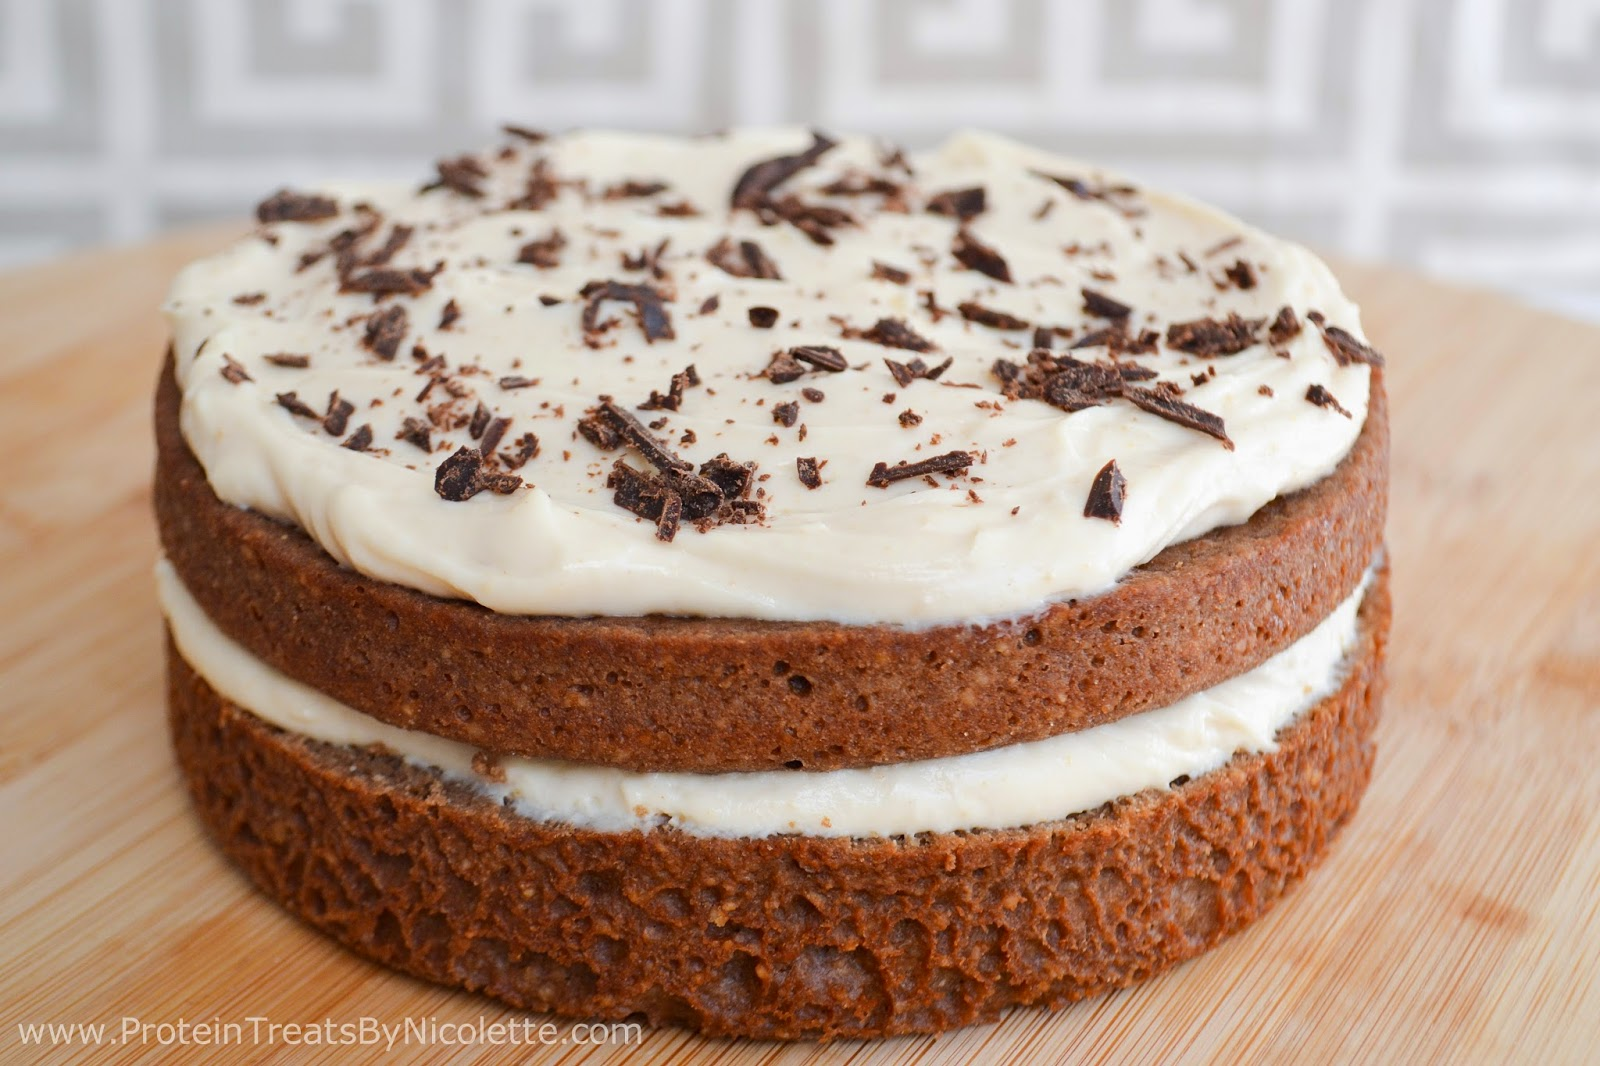 You May Omit The Liquid Stevia In The Icing If You Do Not Have Any Or You Can Use Another Flavor Such As Vanilla If You Omit It Completely